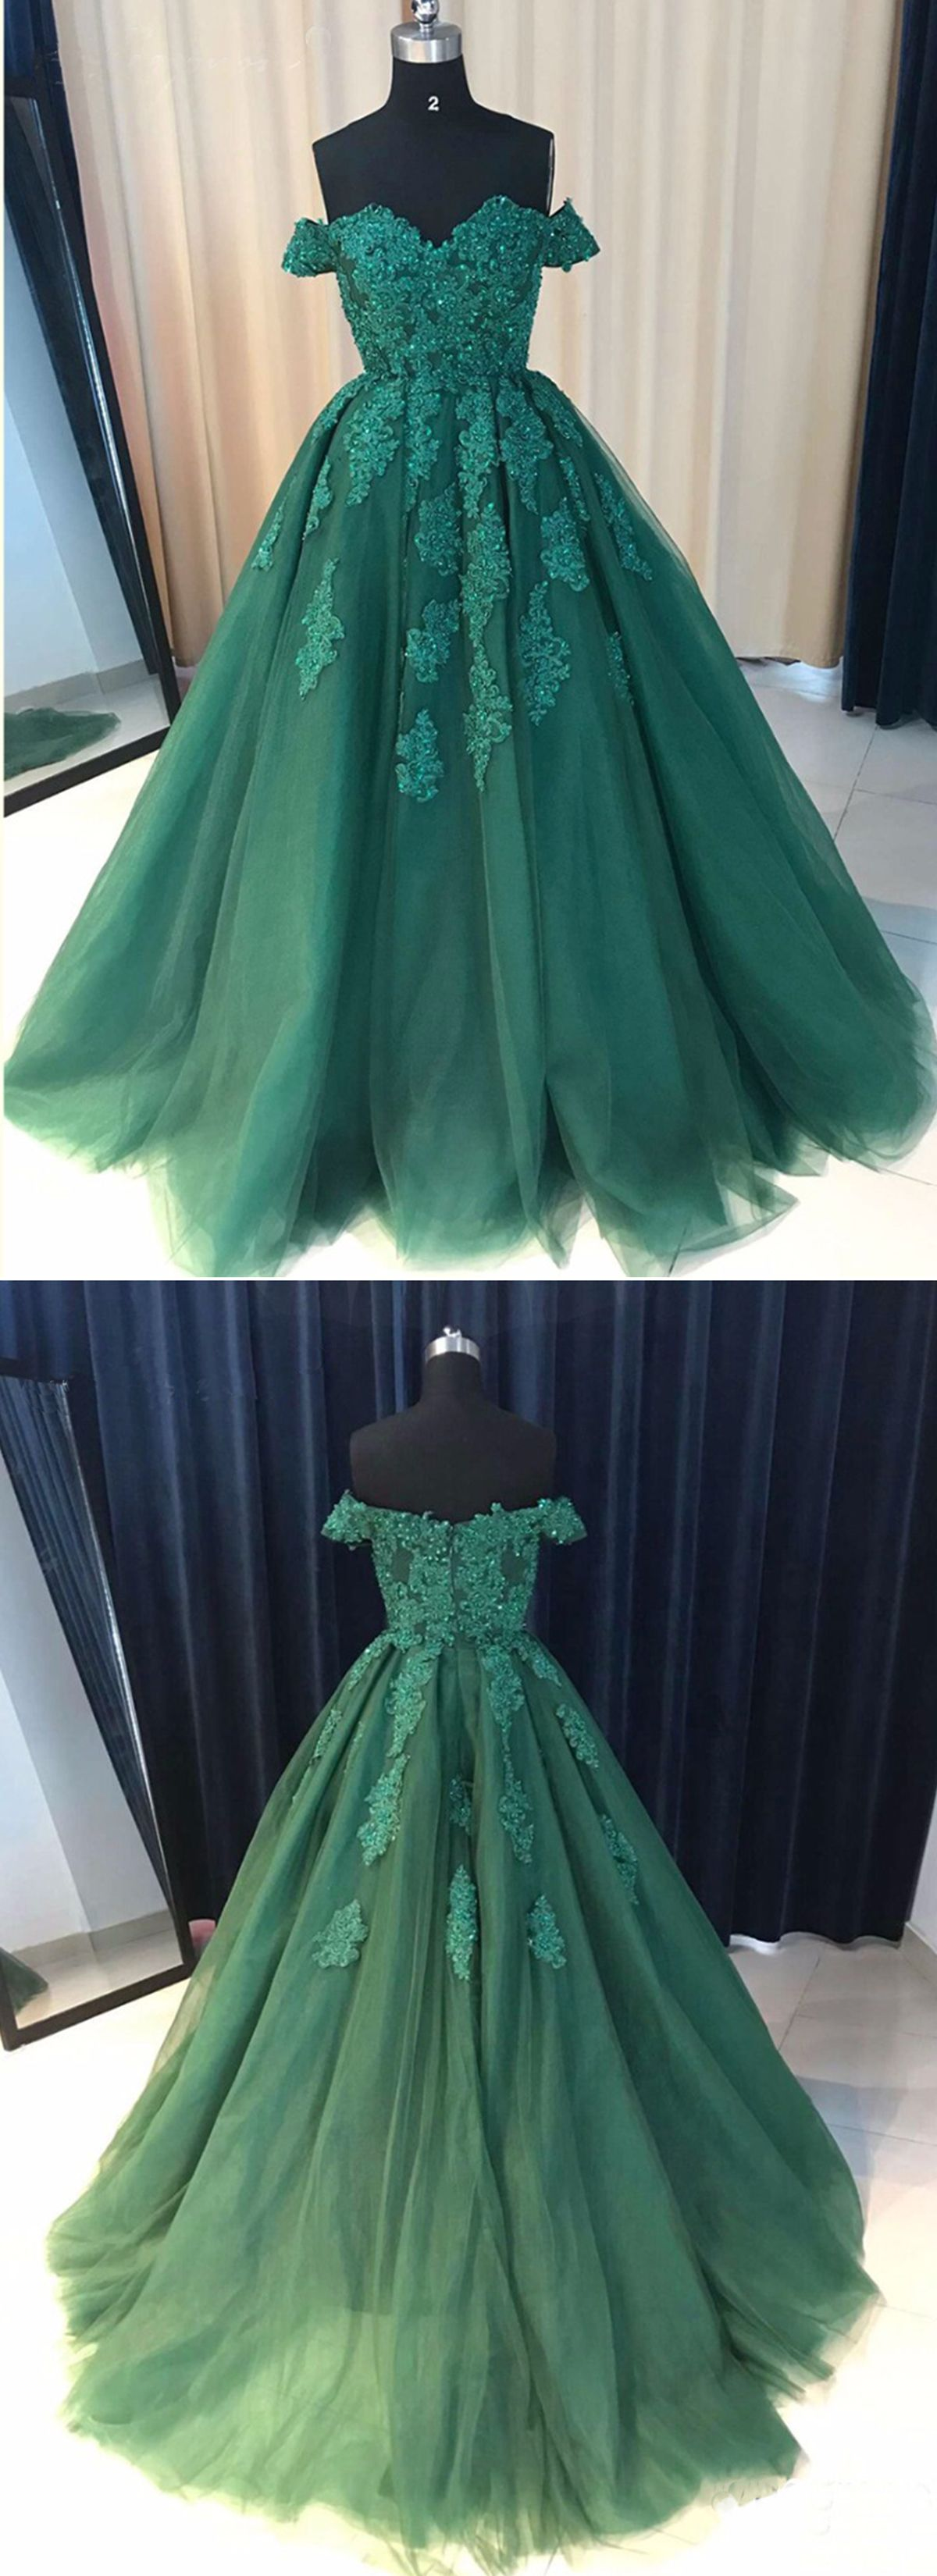 Beautiful green lace tulle prom gown wedding dress | Dresses ...